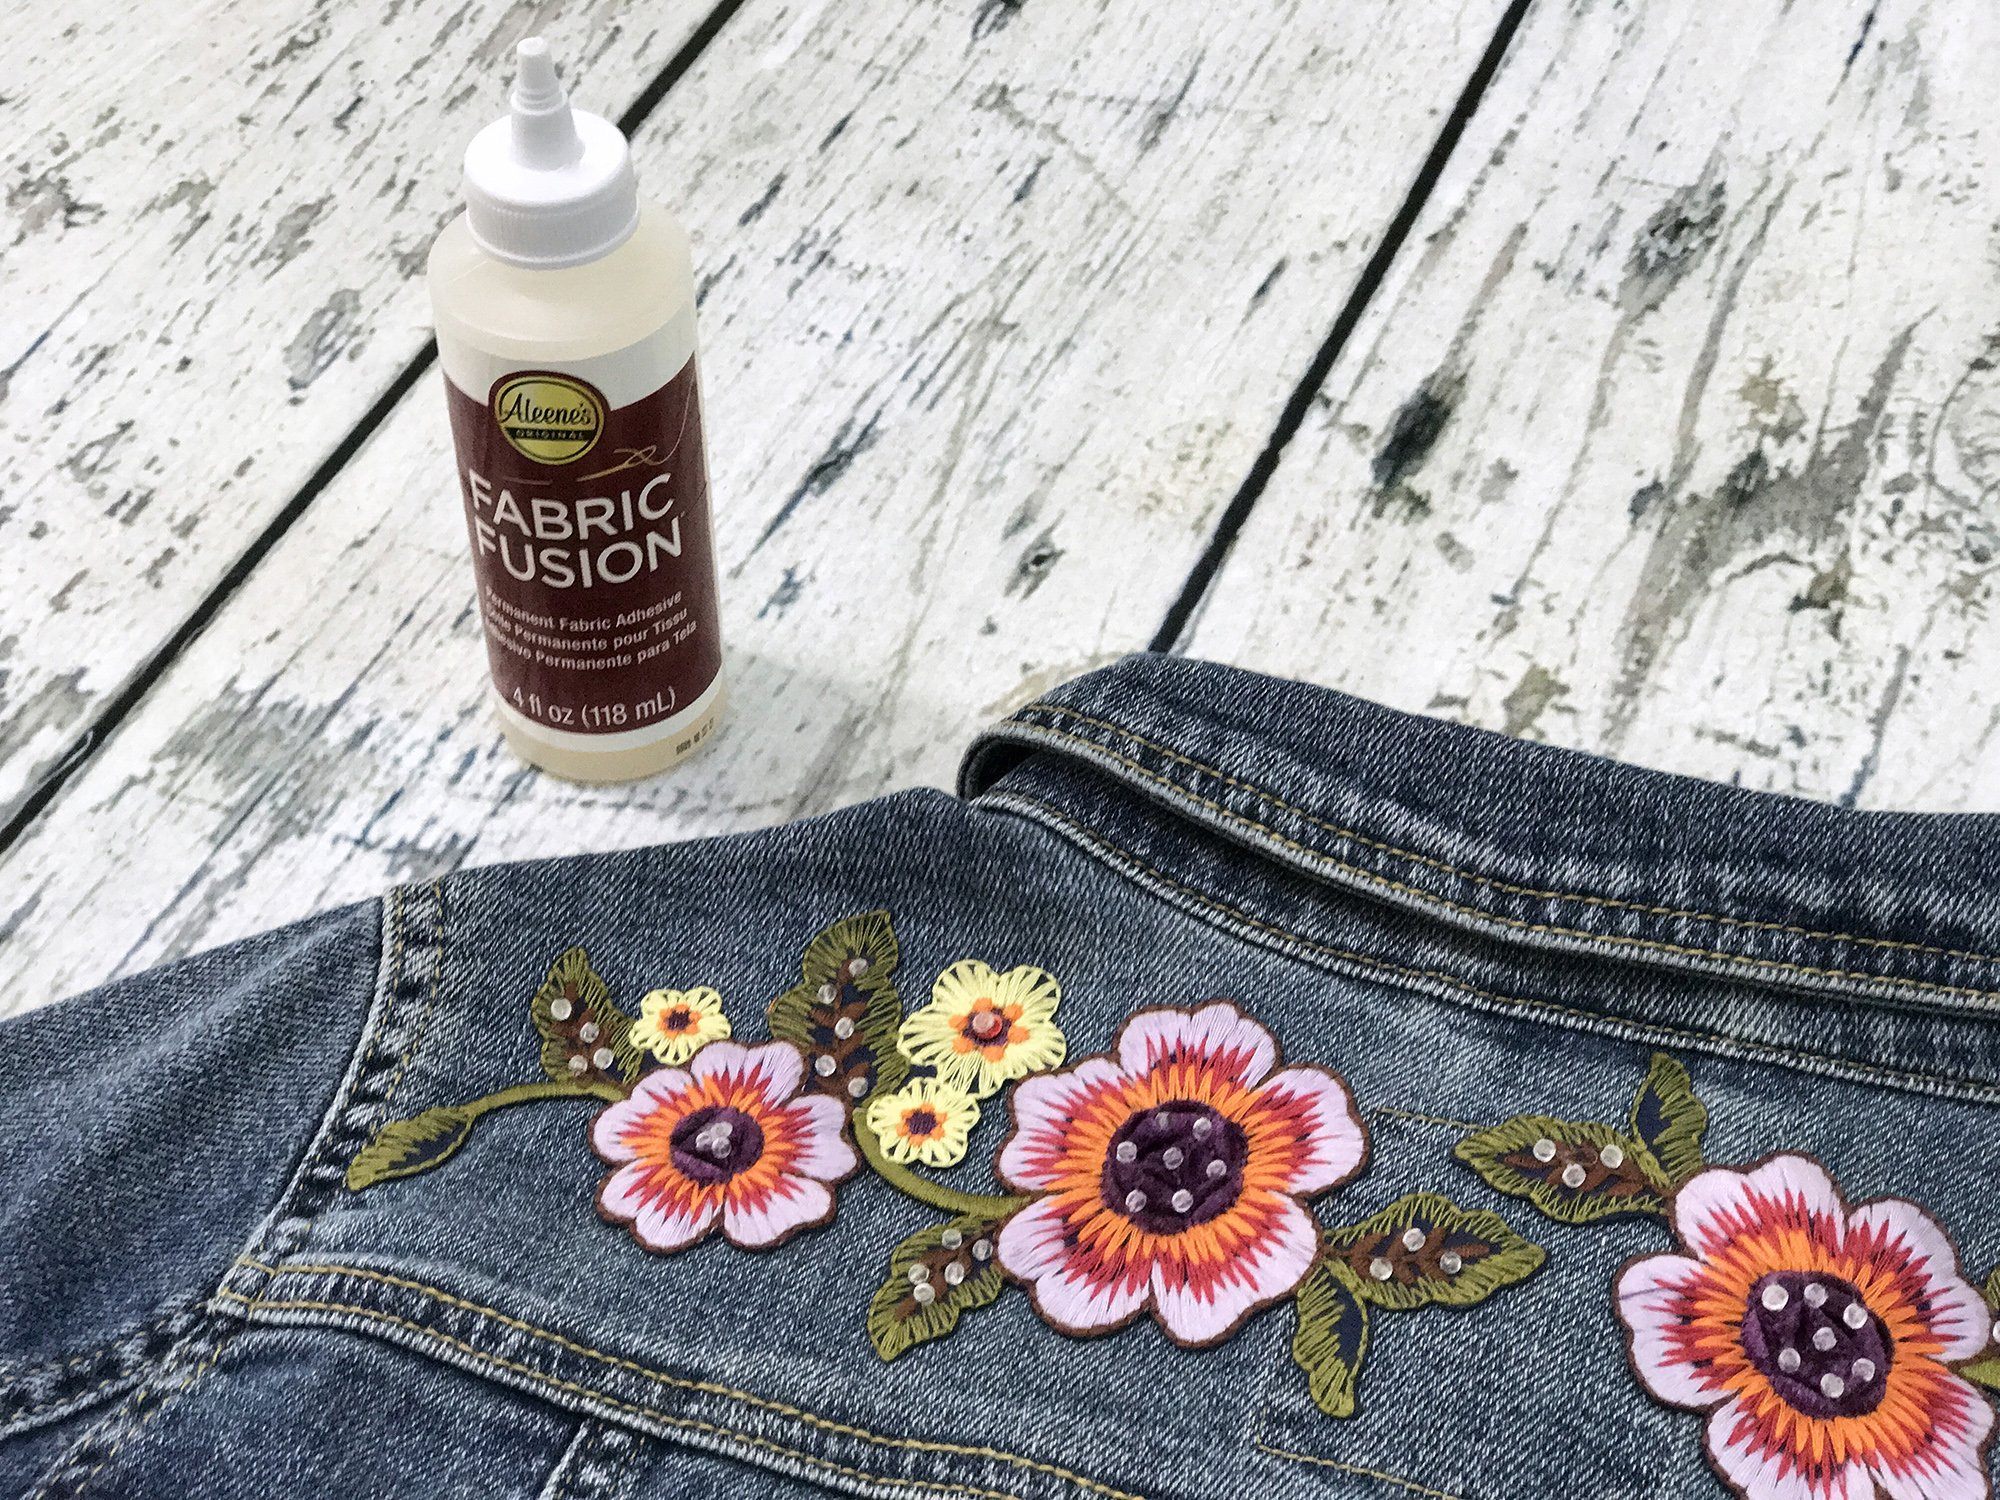 featured image of How To Add Patches to Your Denim Jacket article